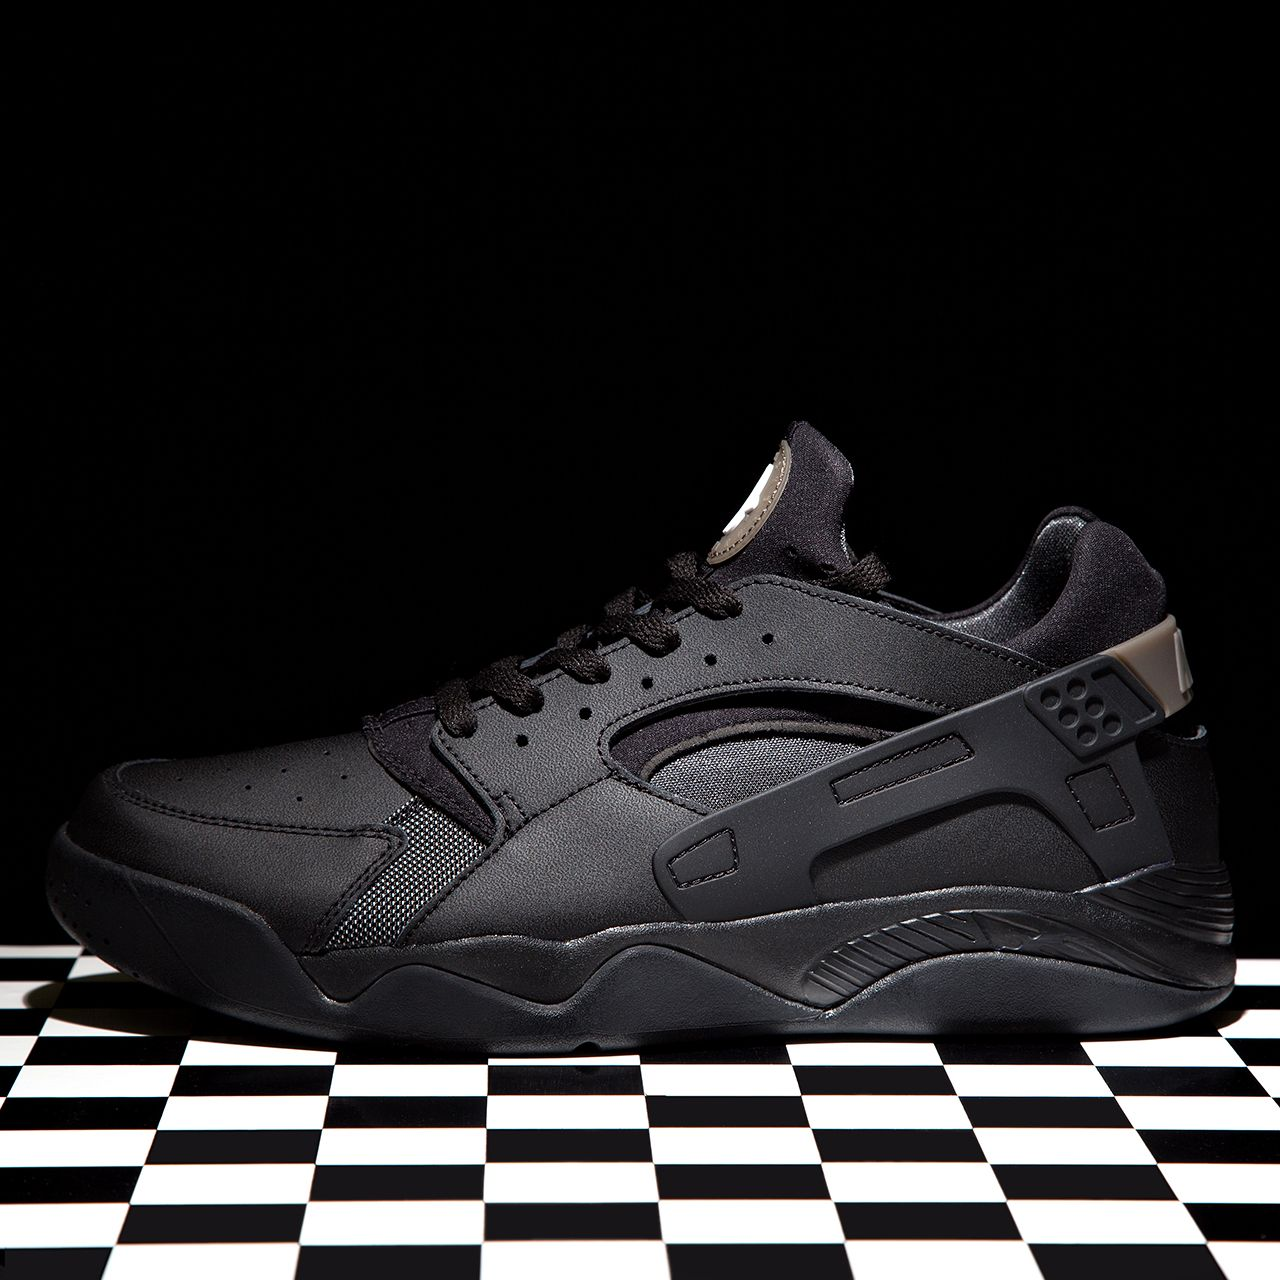 New In - The Nike Air Flight Huarache Low Trainer in in ...